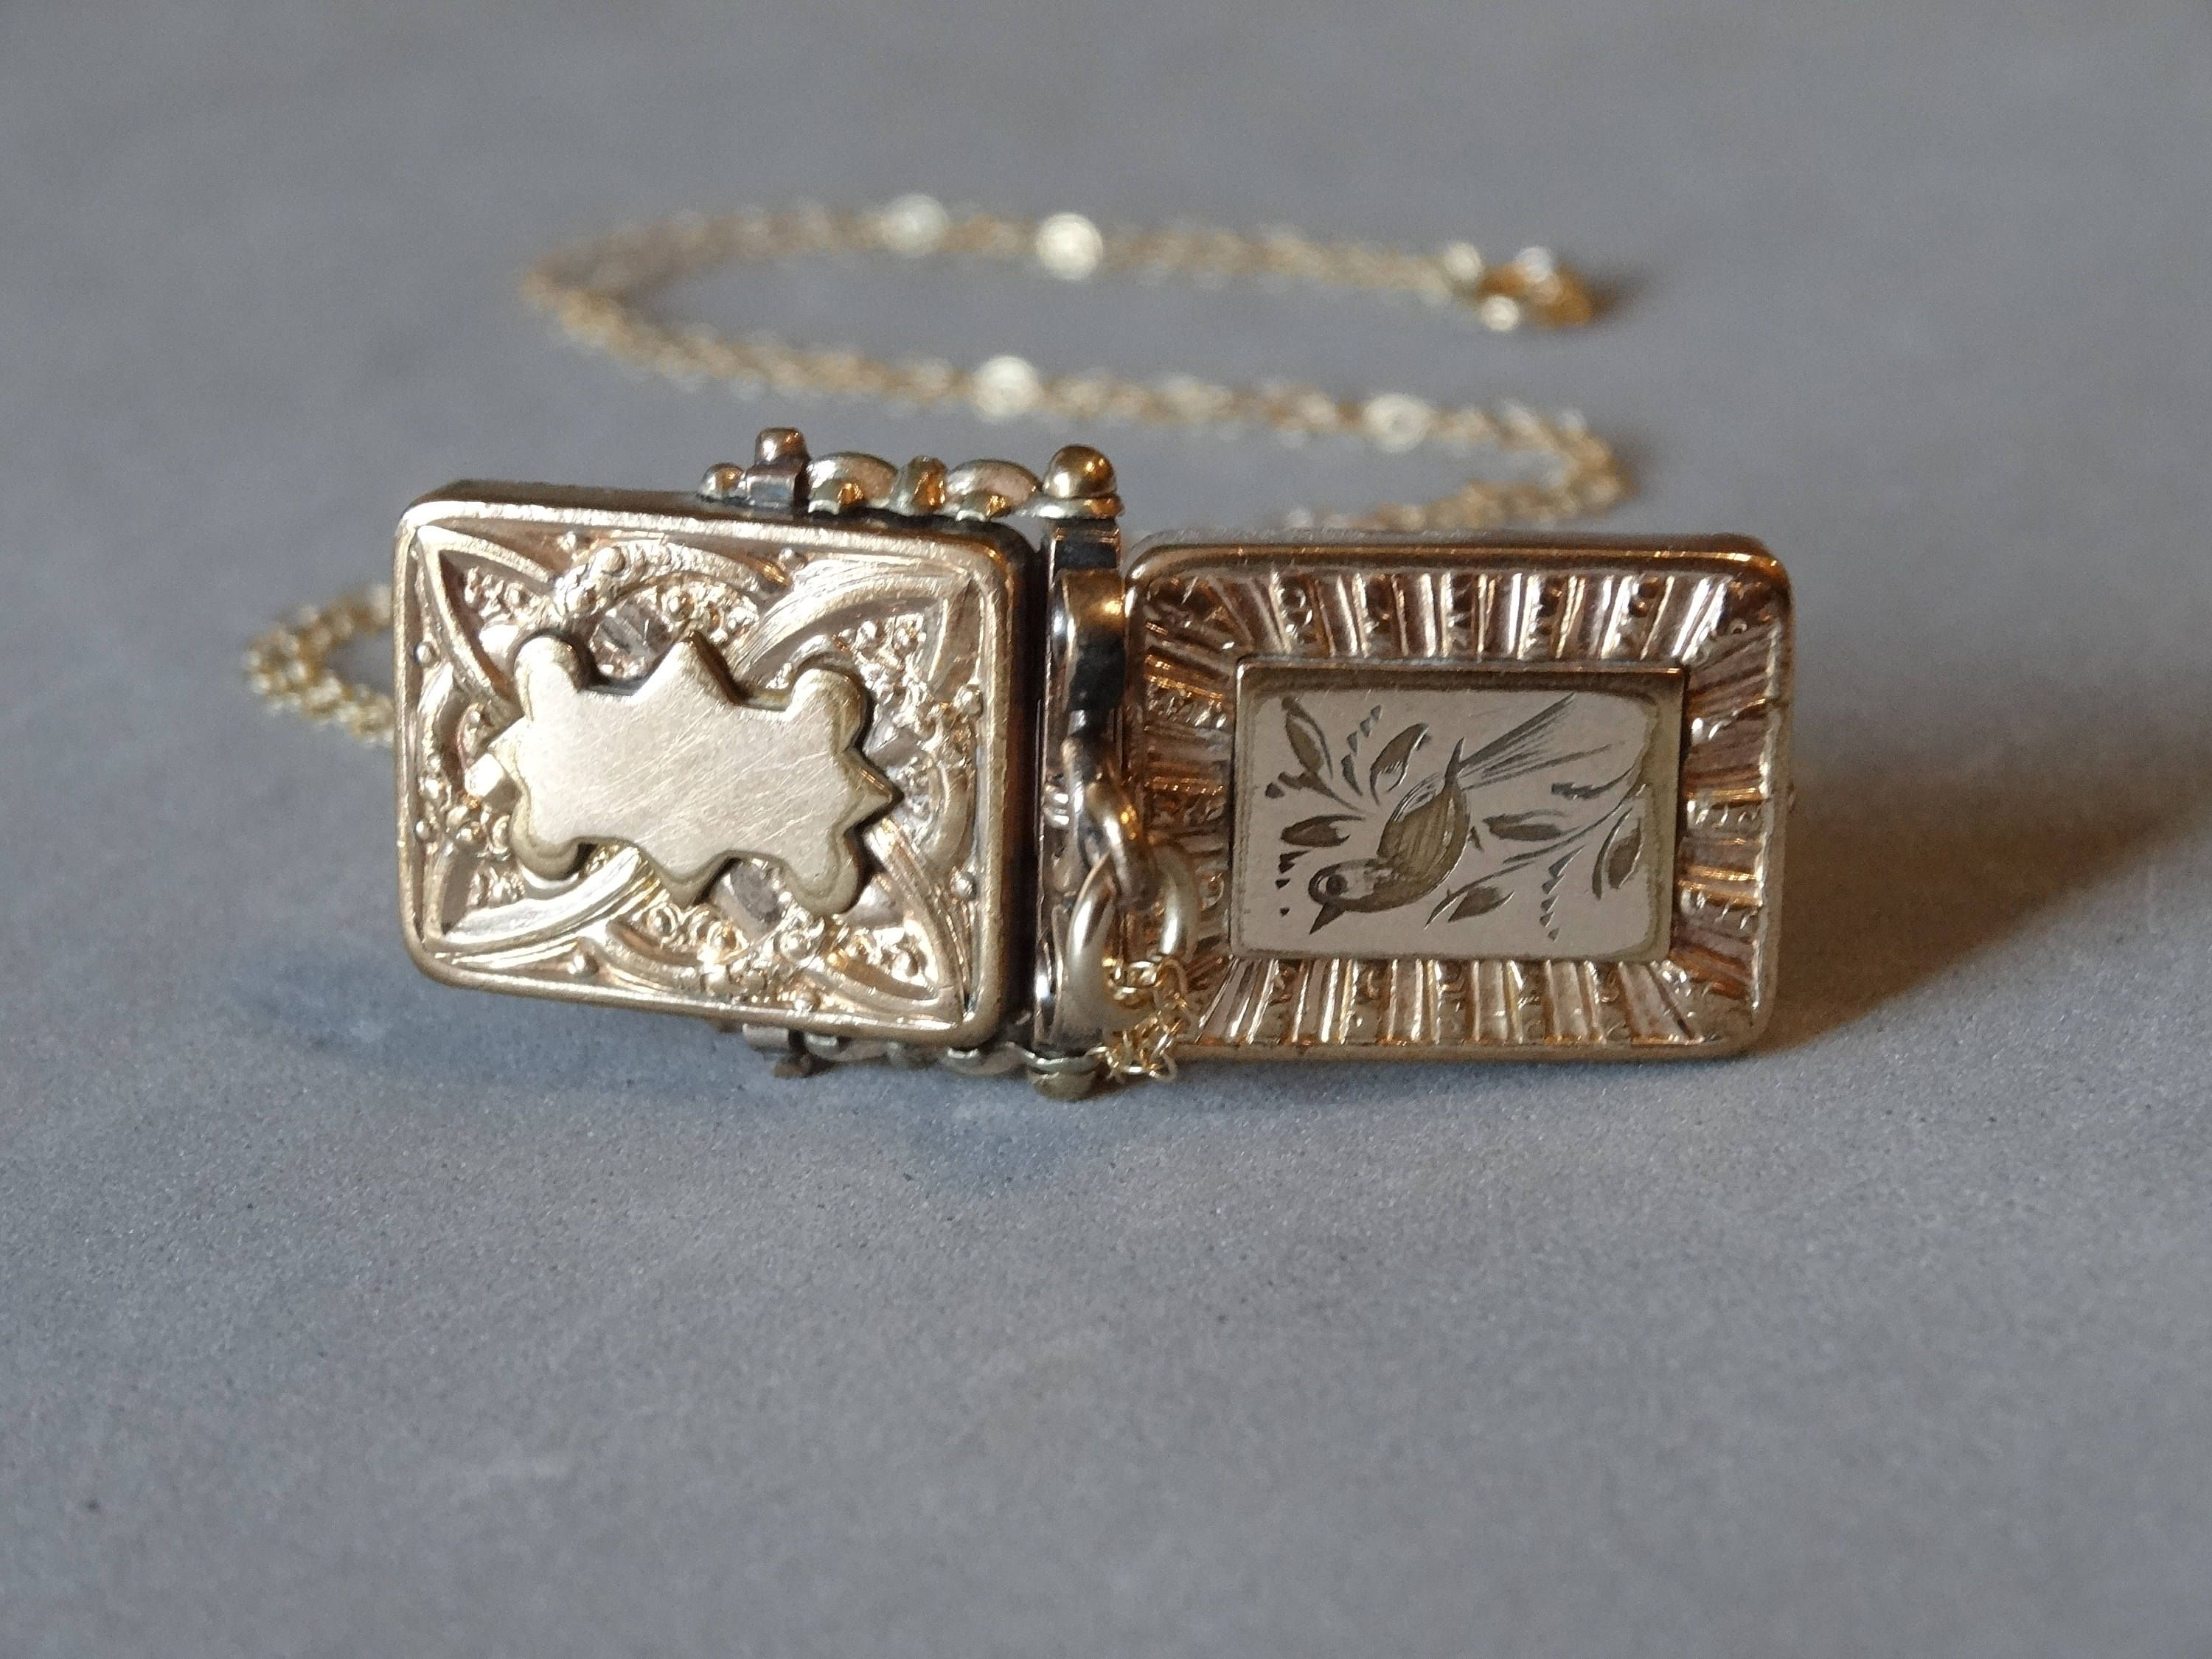 locket crystals oval motif finish me ag antique clear lockets miss necklace deco ellie gold square nyc